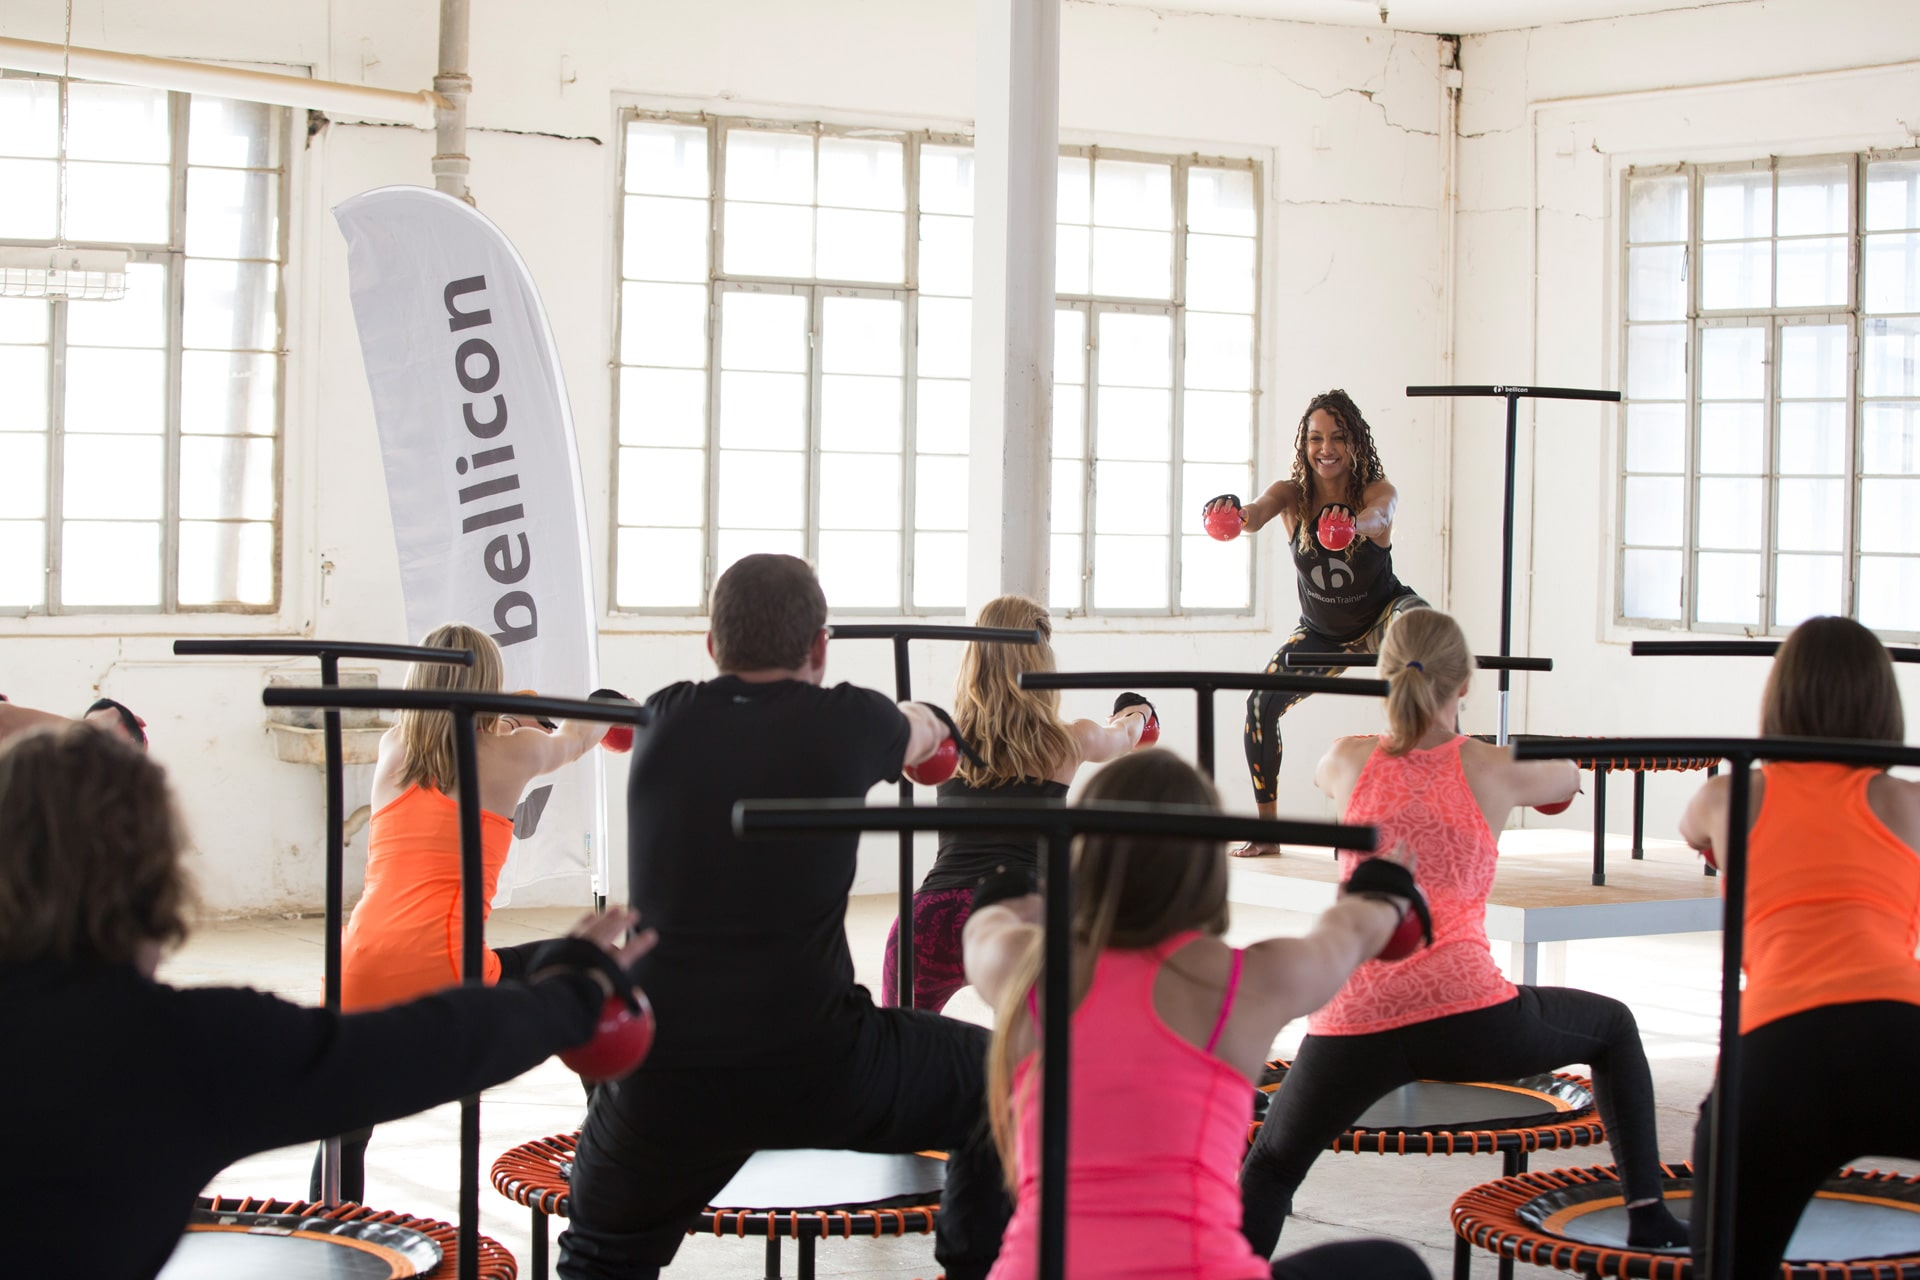 bellicon lessen in uw fitnesscentrum